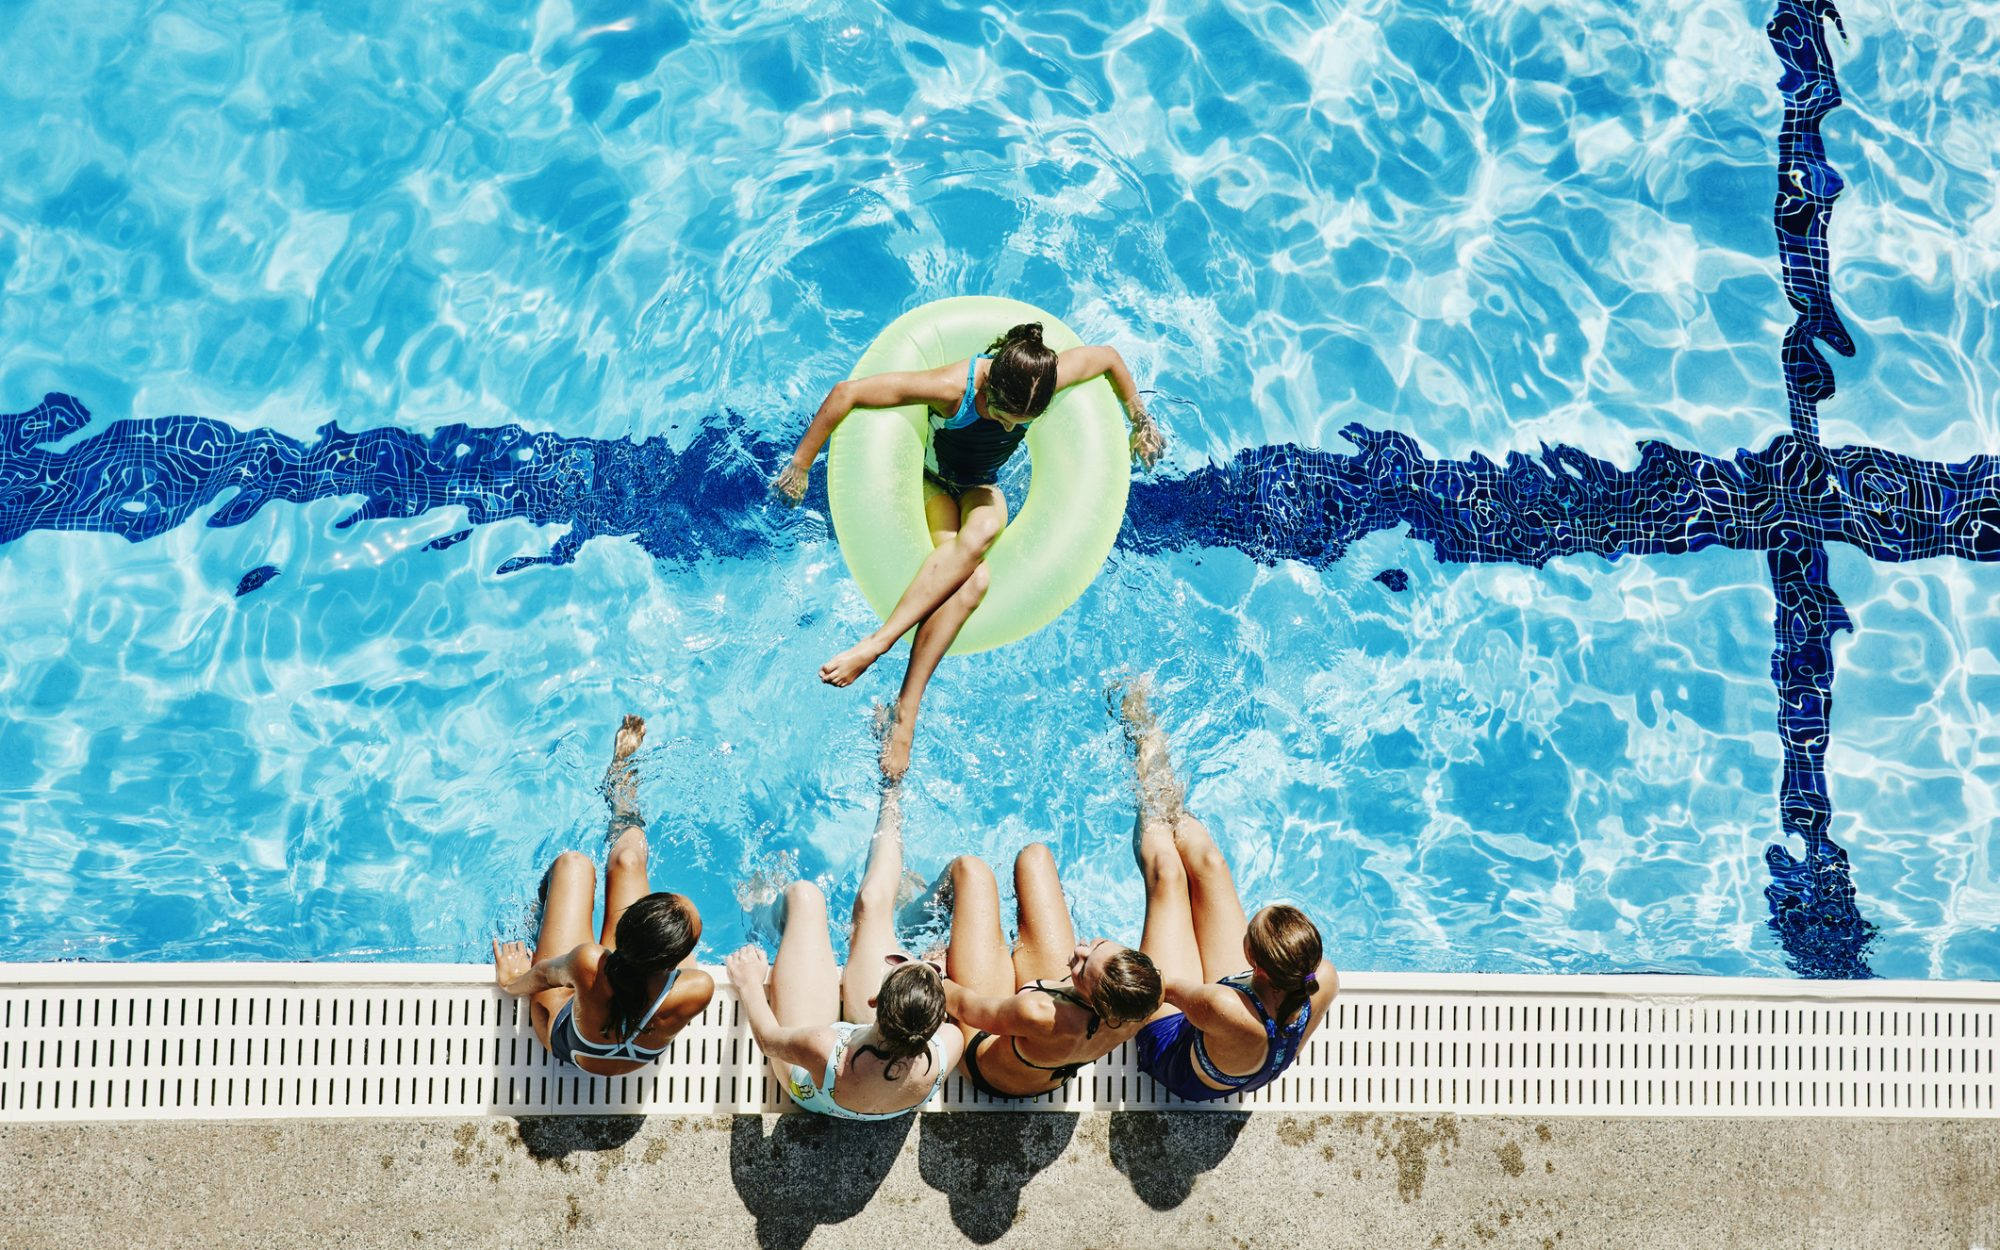 Overhead view of girls hanging out together at outdoor pool